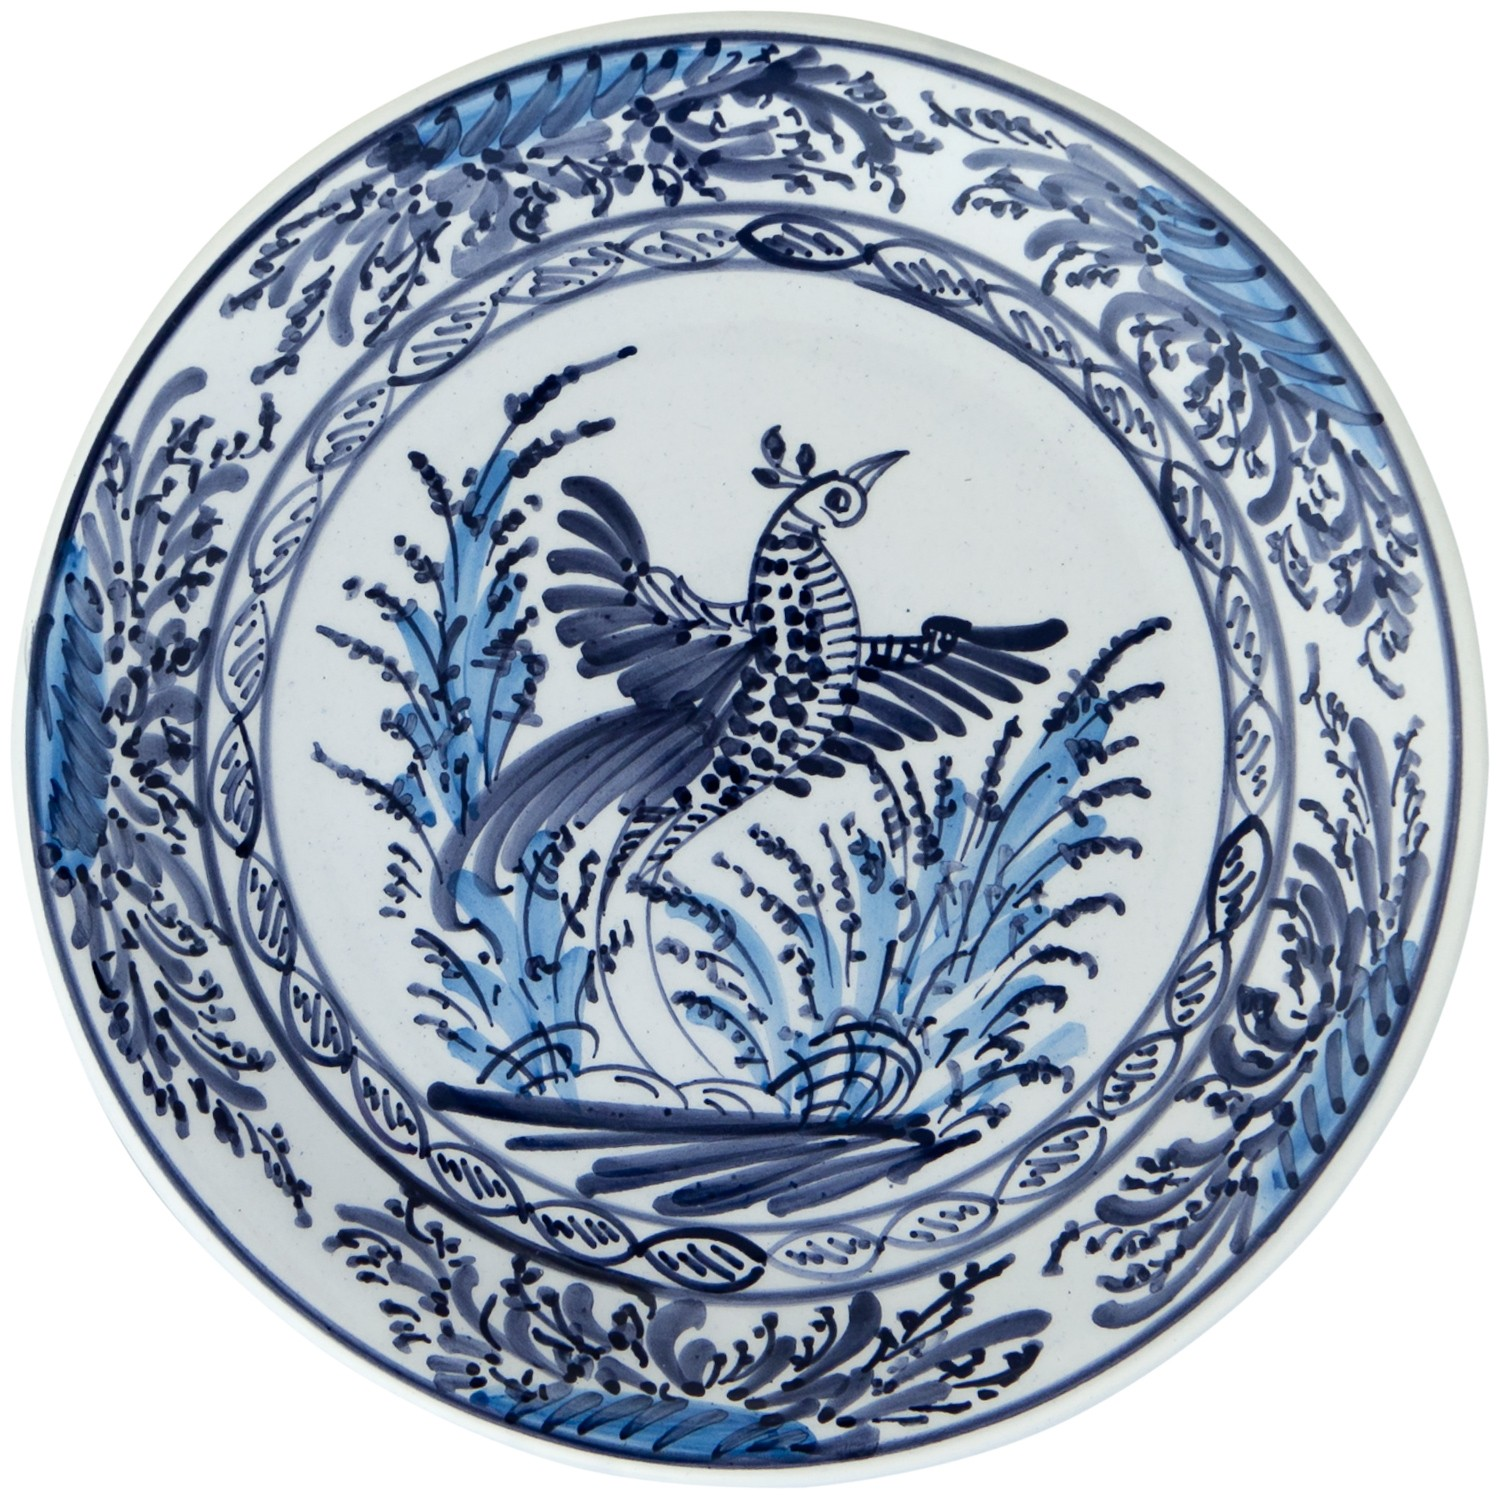 Hand_painted_Ceramic_Decorative_Plates_Blue_and_White-Peacock-1